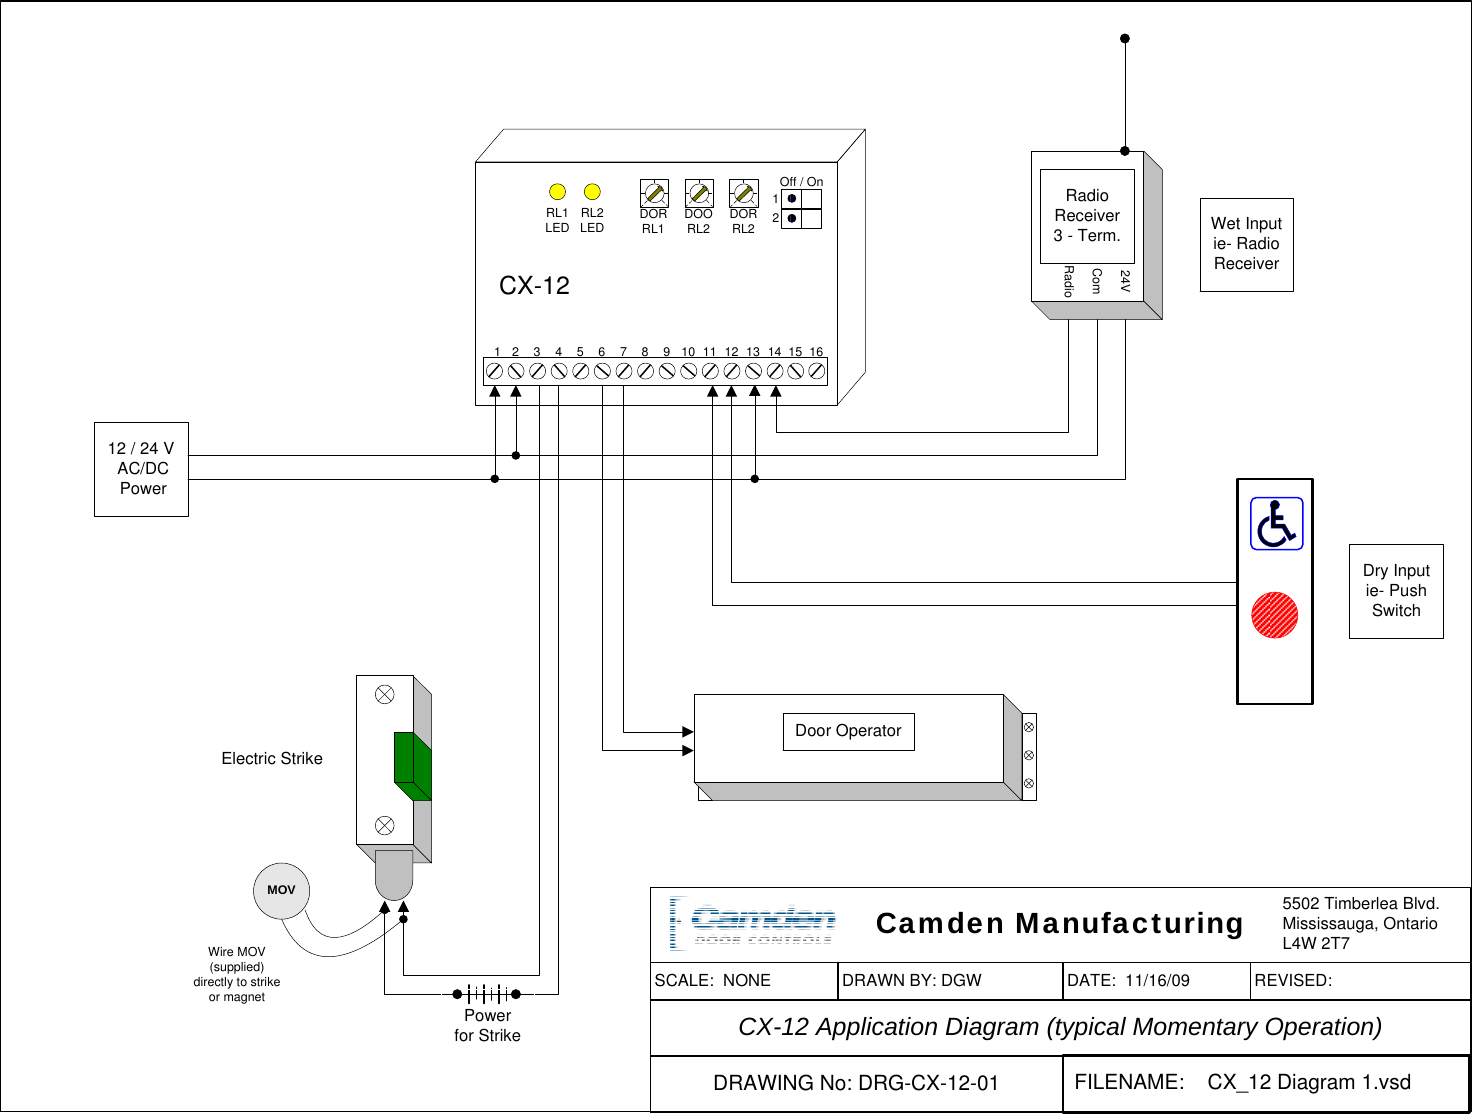 camden cx-12 switching network manual